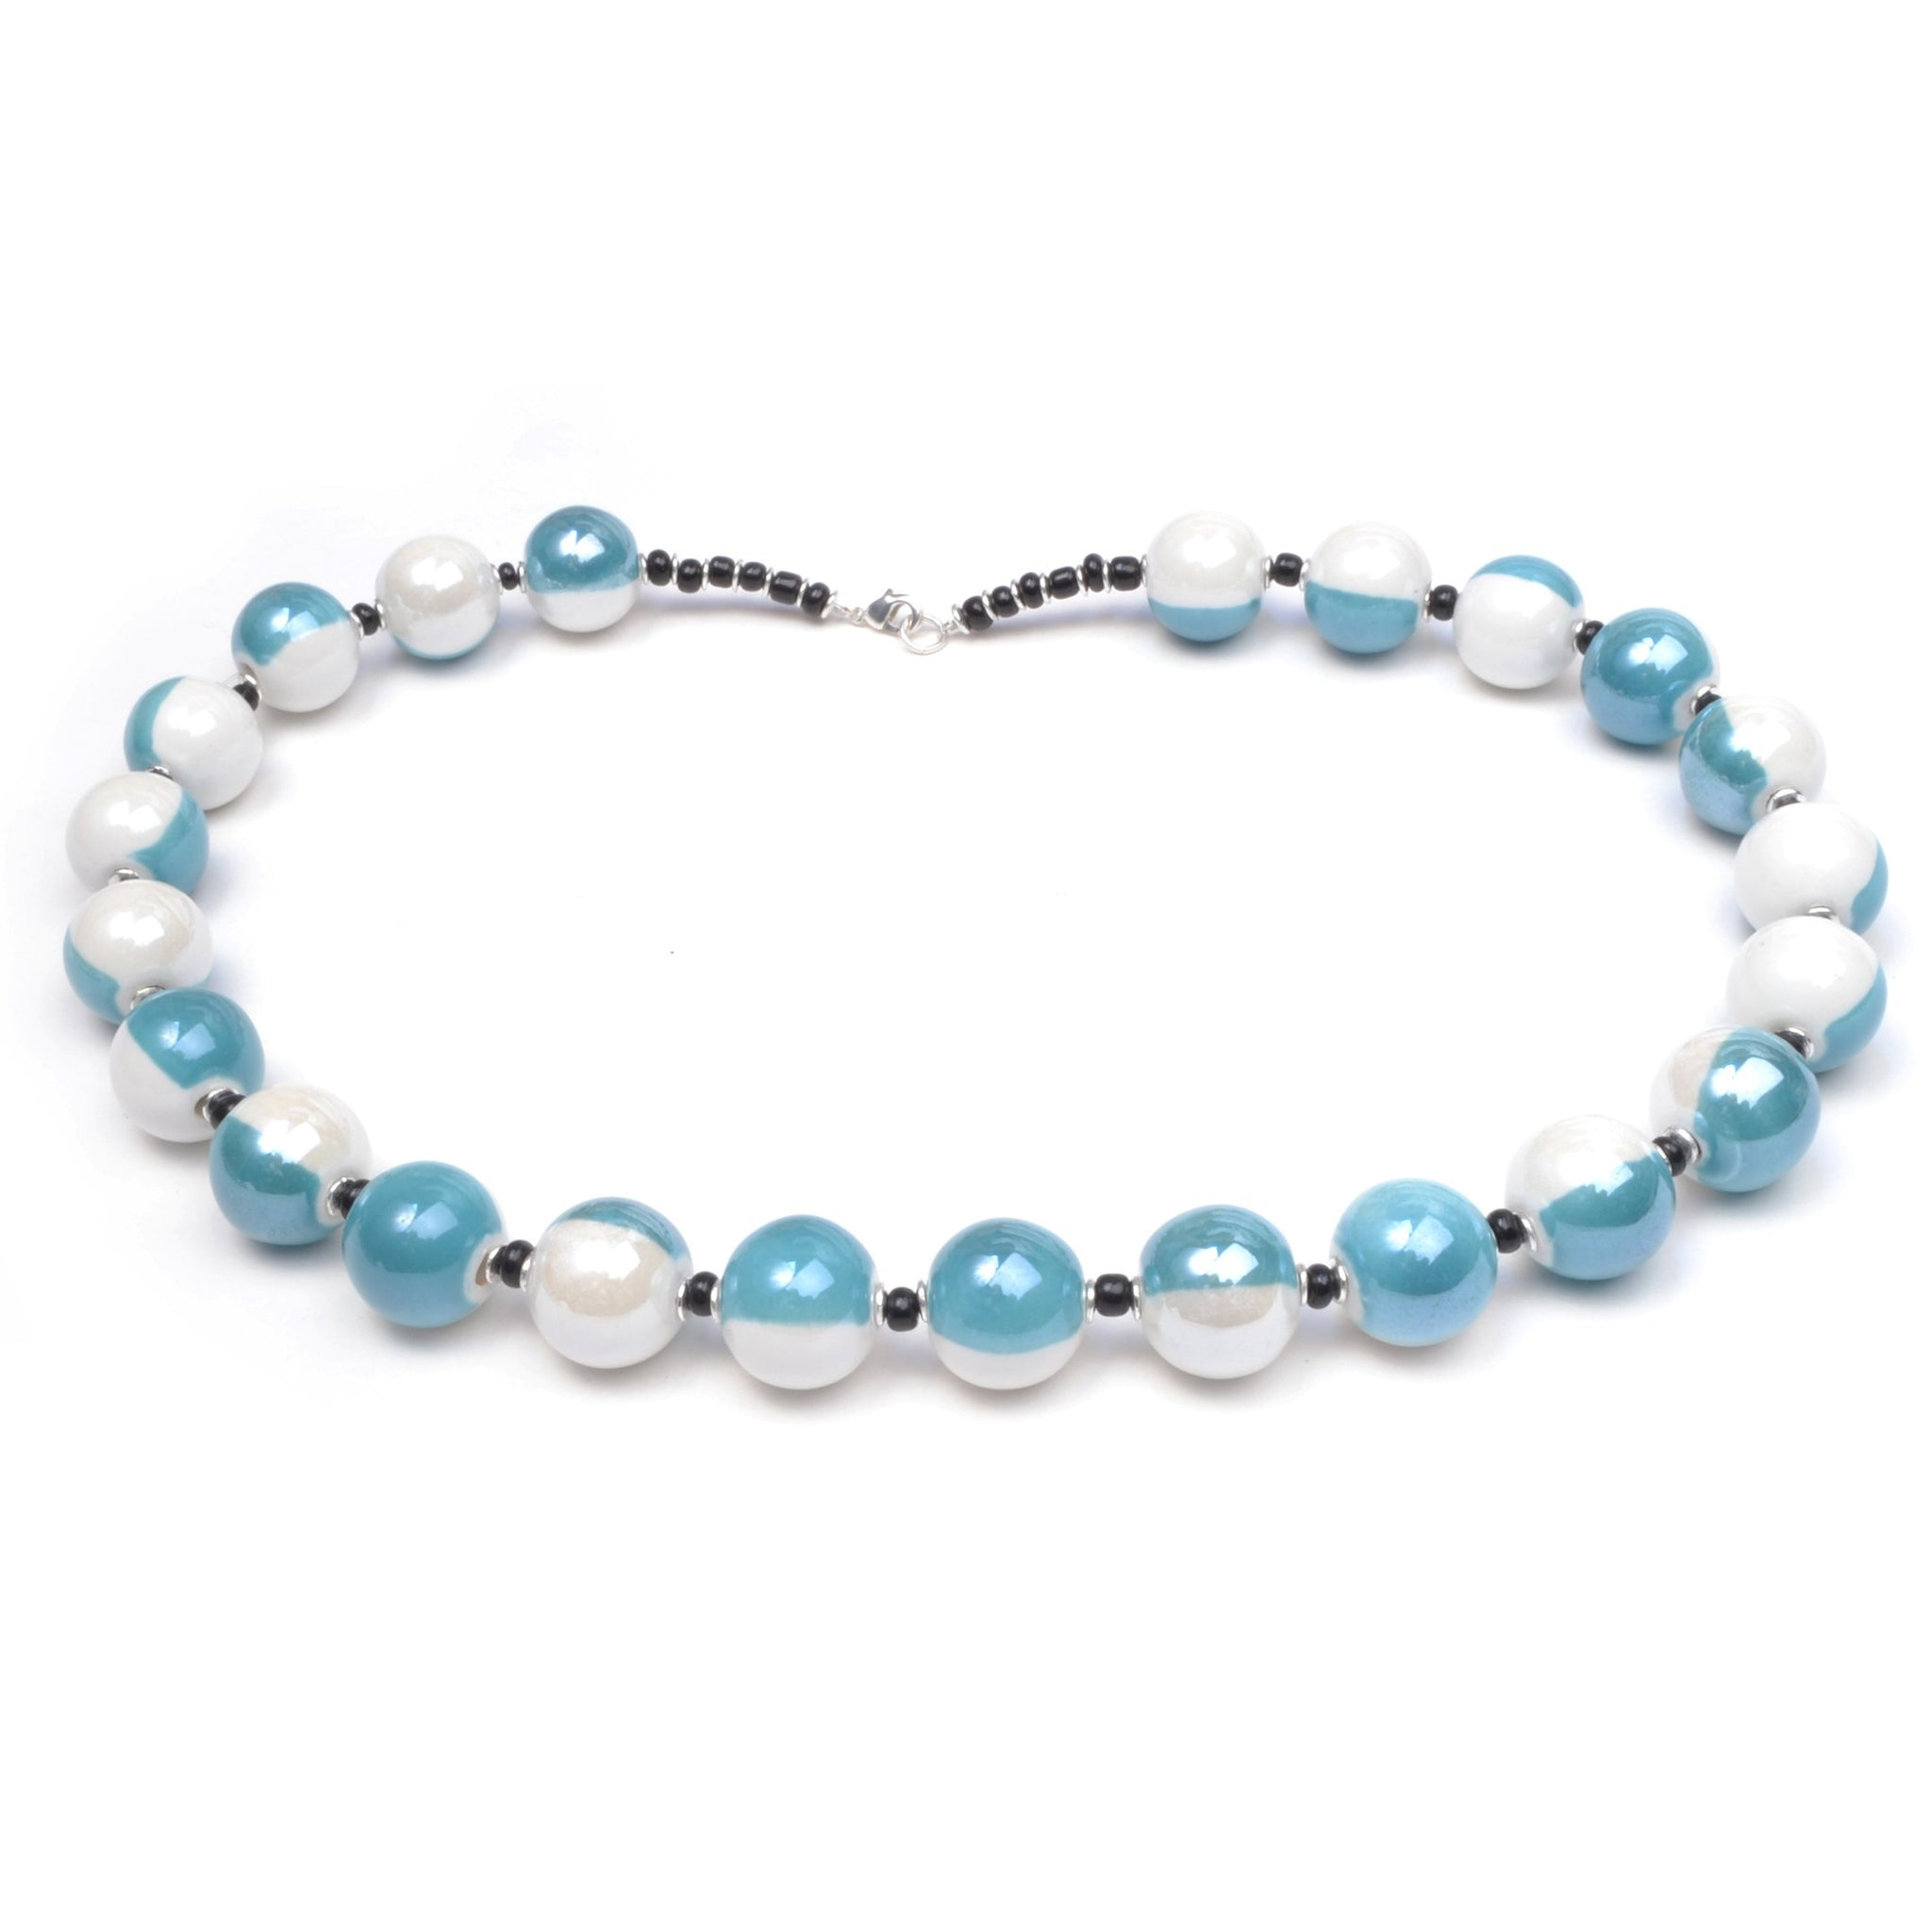 Zukari Kallea Necklace -  Ice Blue